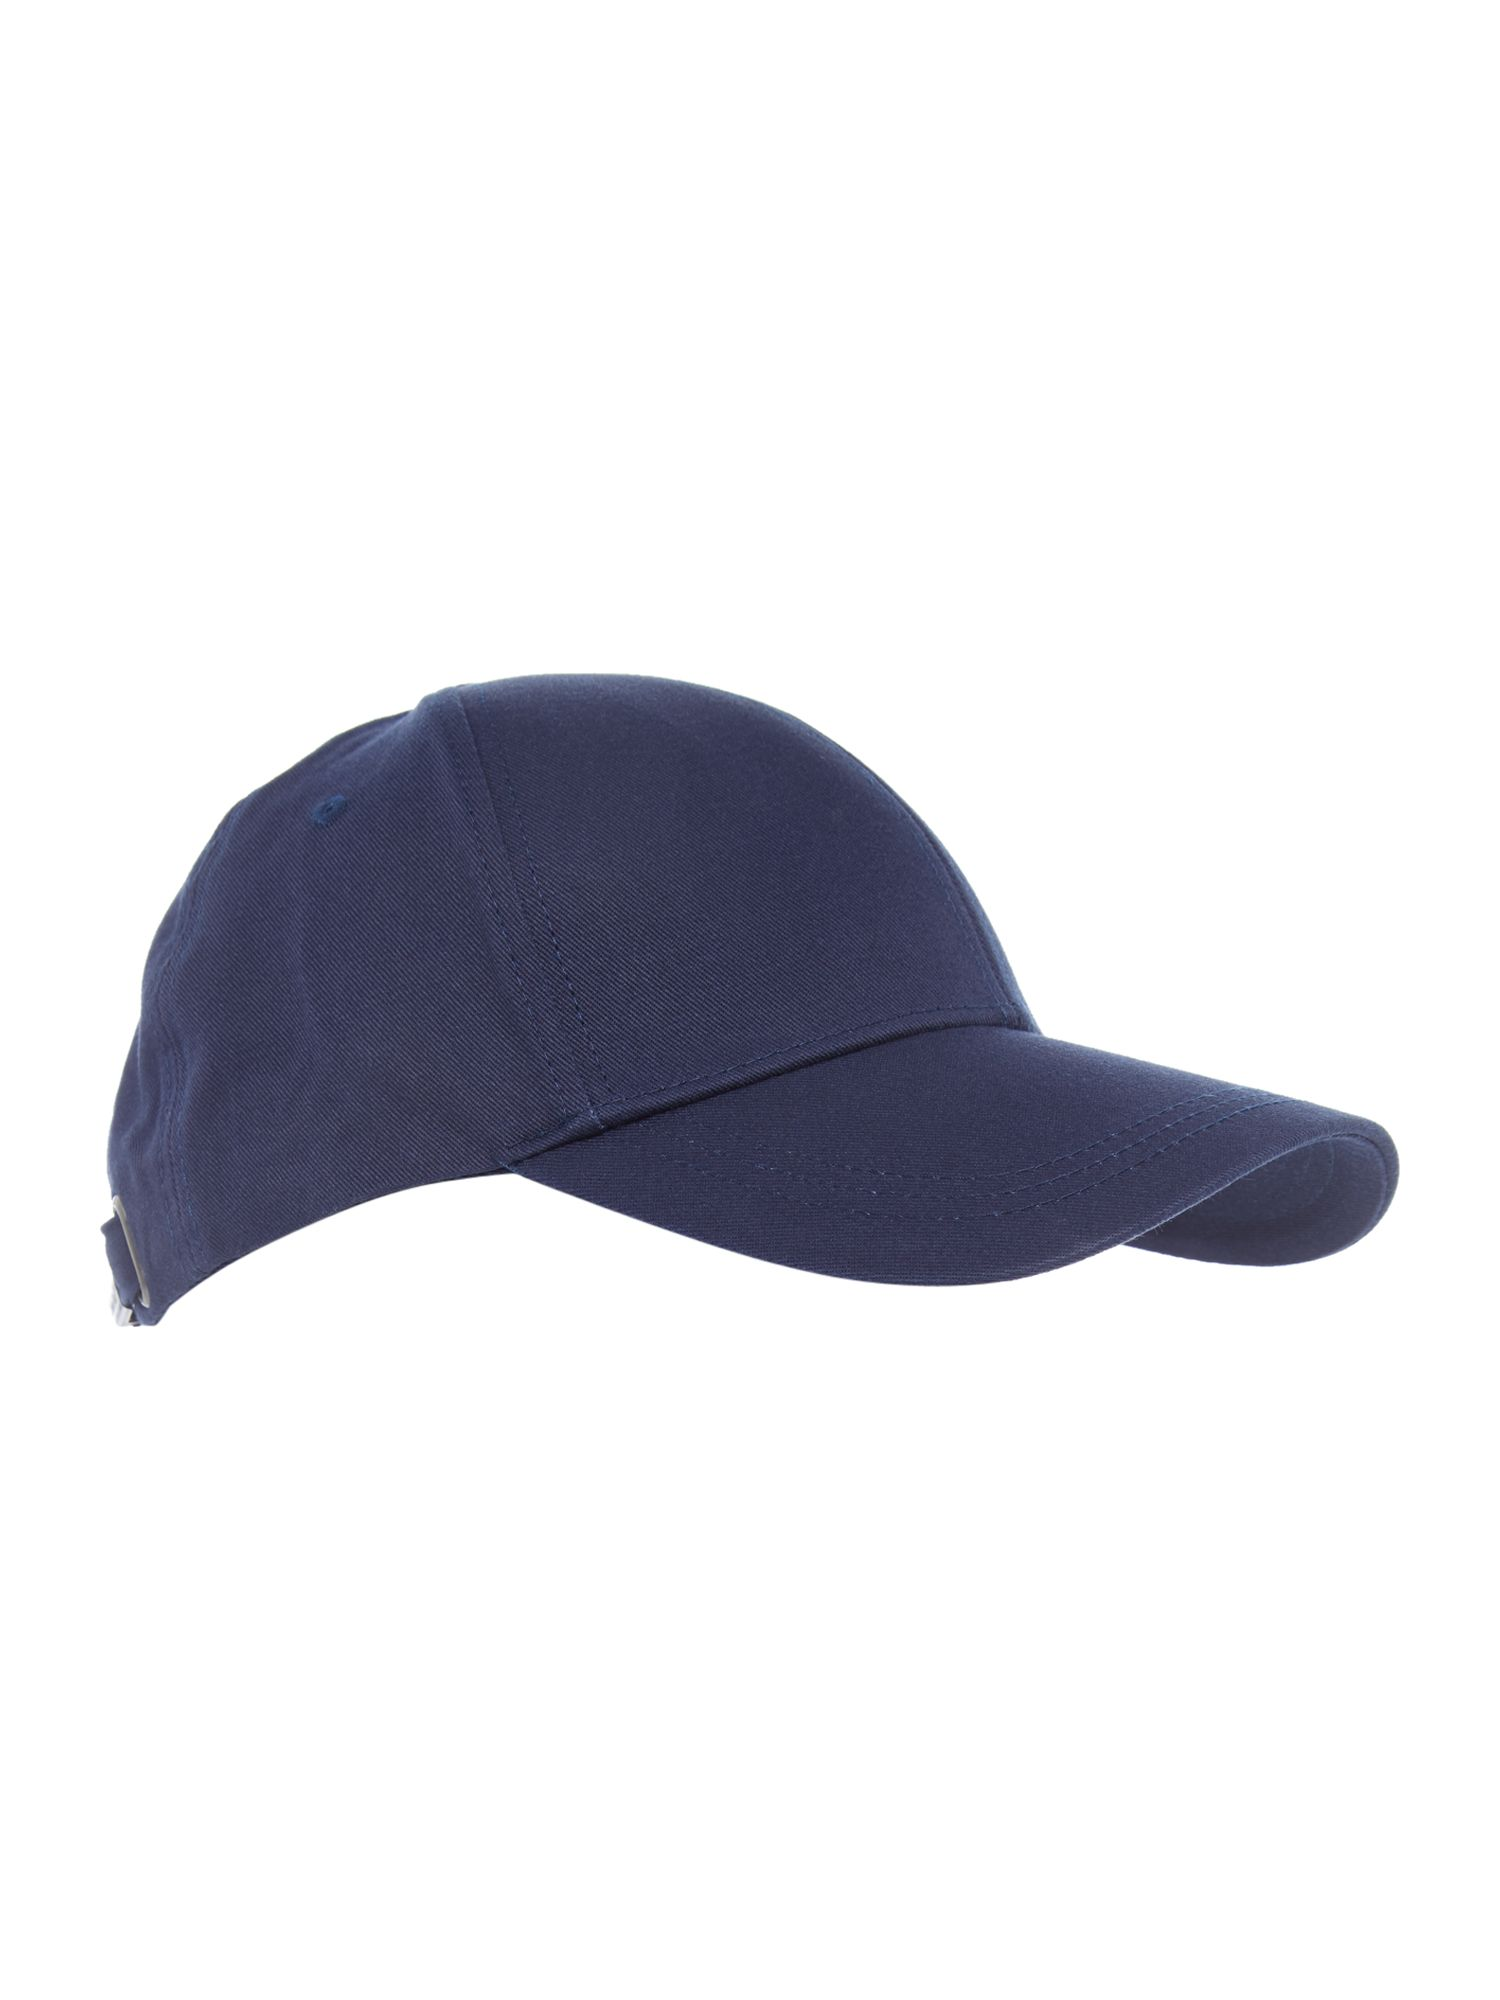 Calvin klein classic baseball cap blue review for Quality classic house of fraser